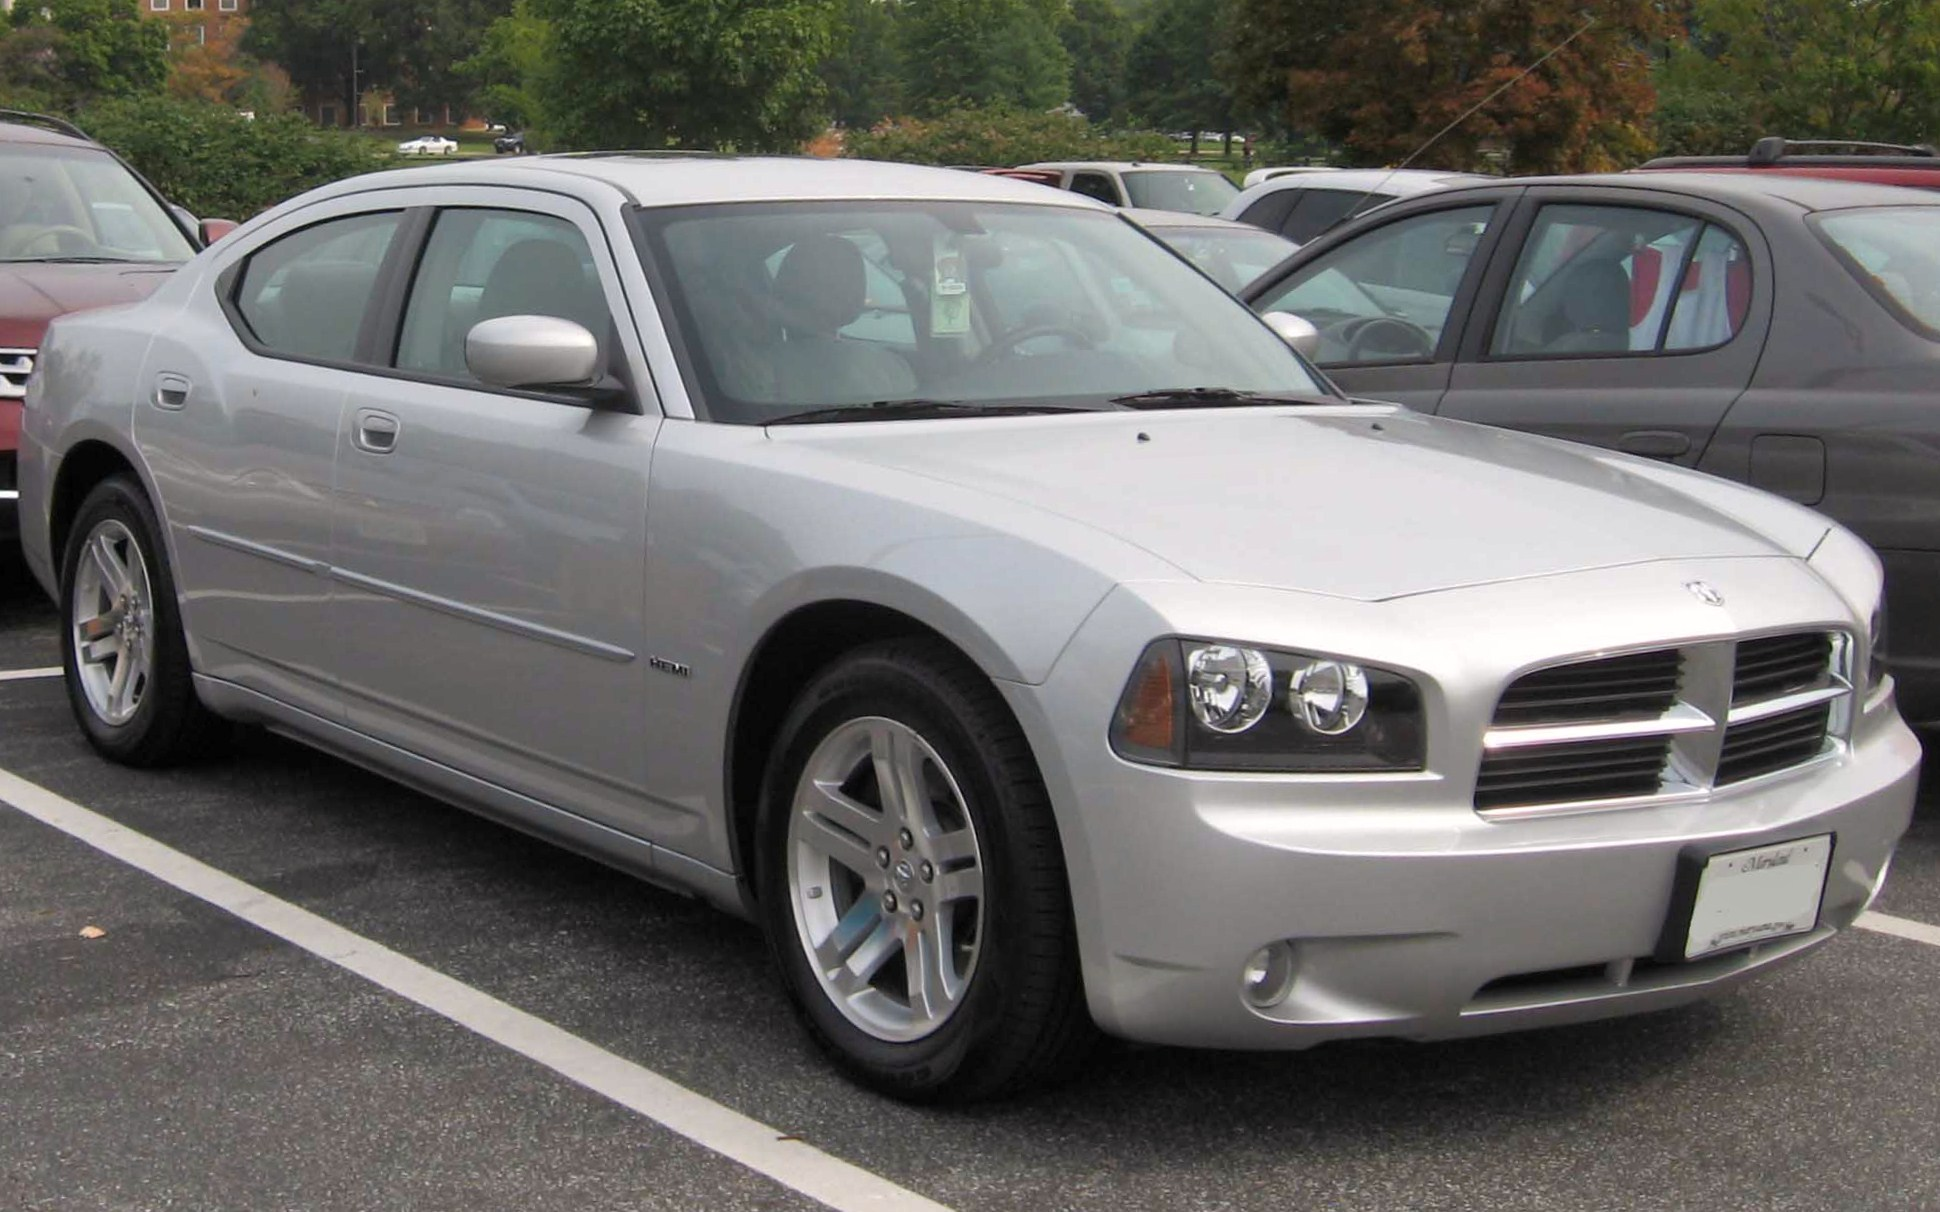 file:dodge charger rt - wikimedia commons